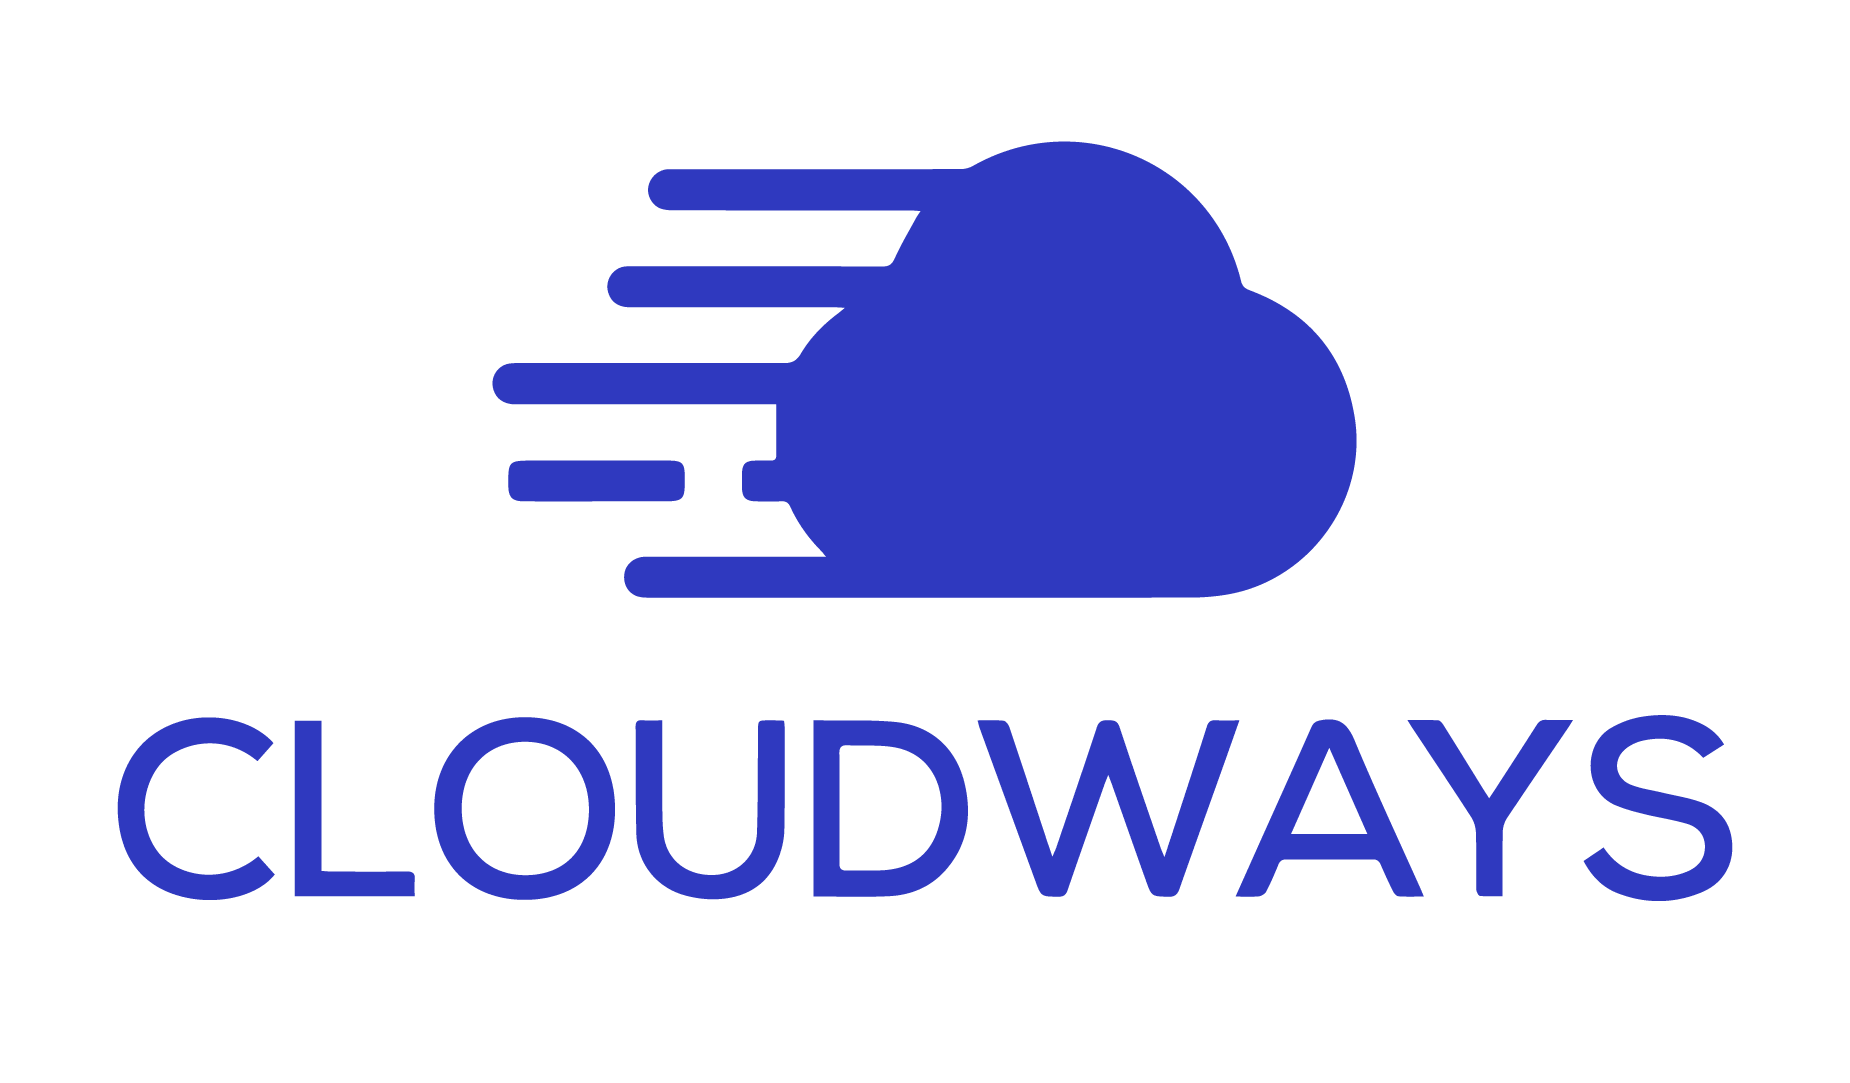 Cloudways logo for Black Friday Cyber Monday Deals